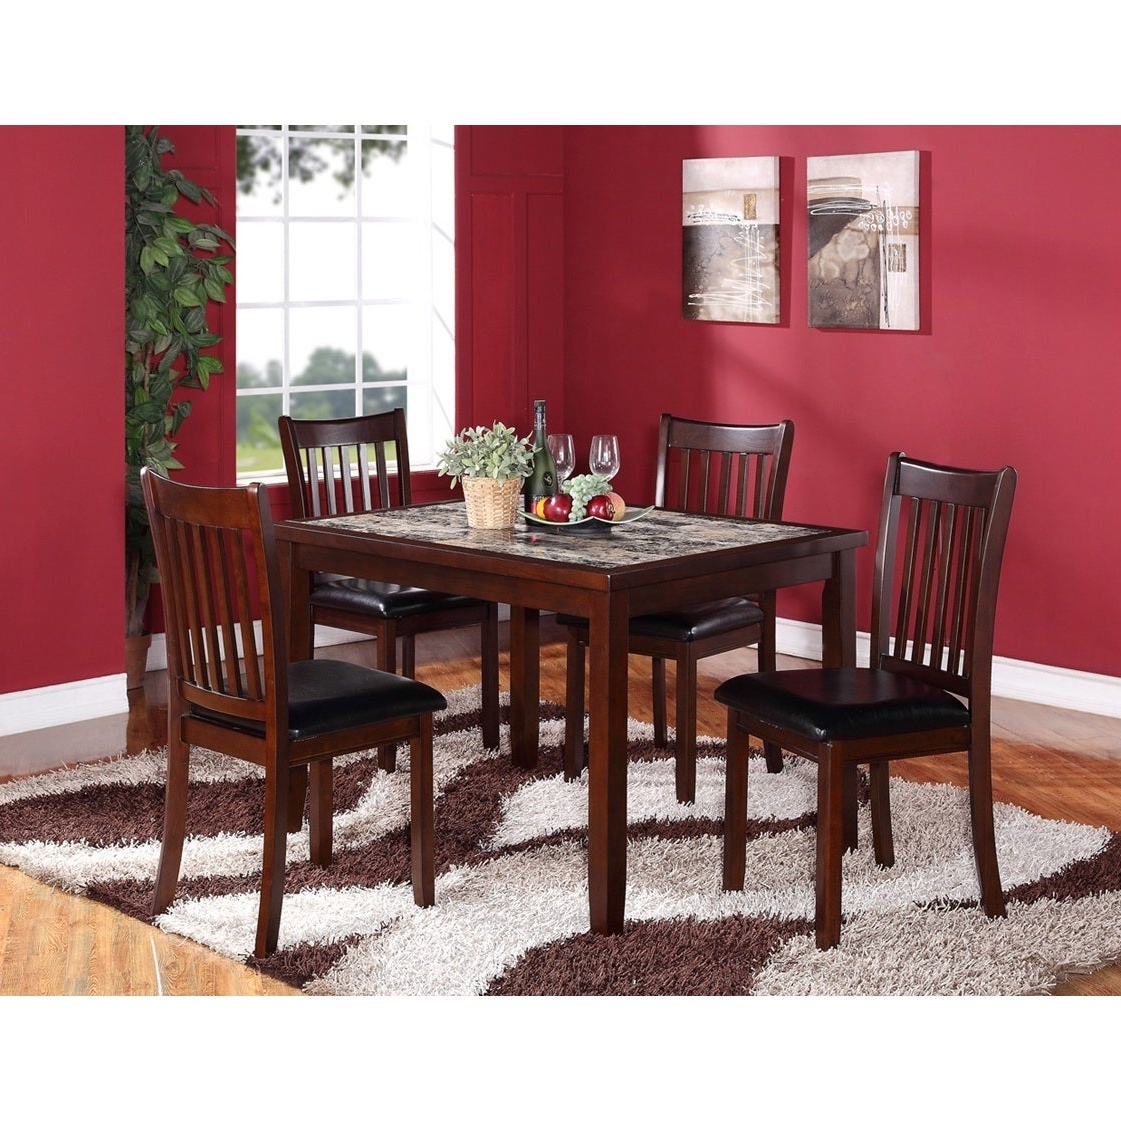 Most Popular Aria 5 Piece Dining Sets Pertaining To Shop 5 Piece Wooden Dining Set In Dark Brown With Artificial Marble (View 8 of 25)